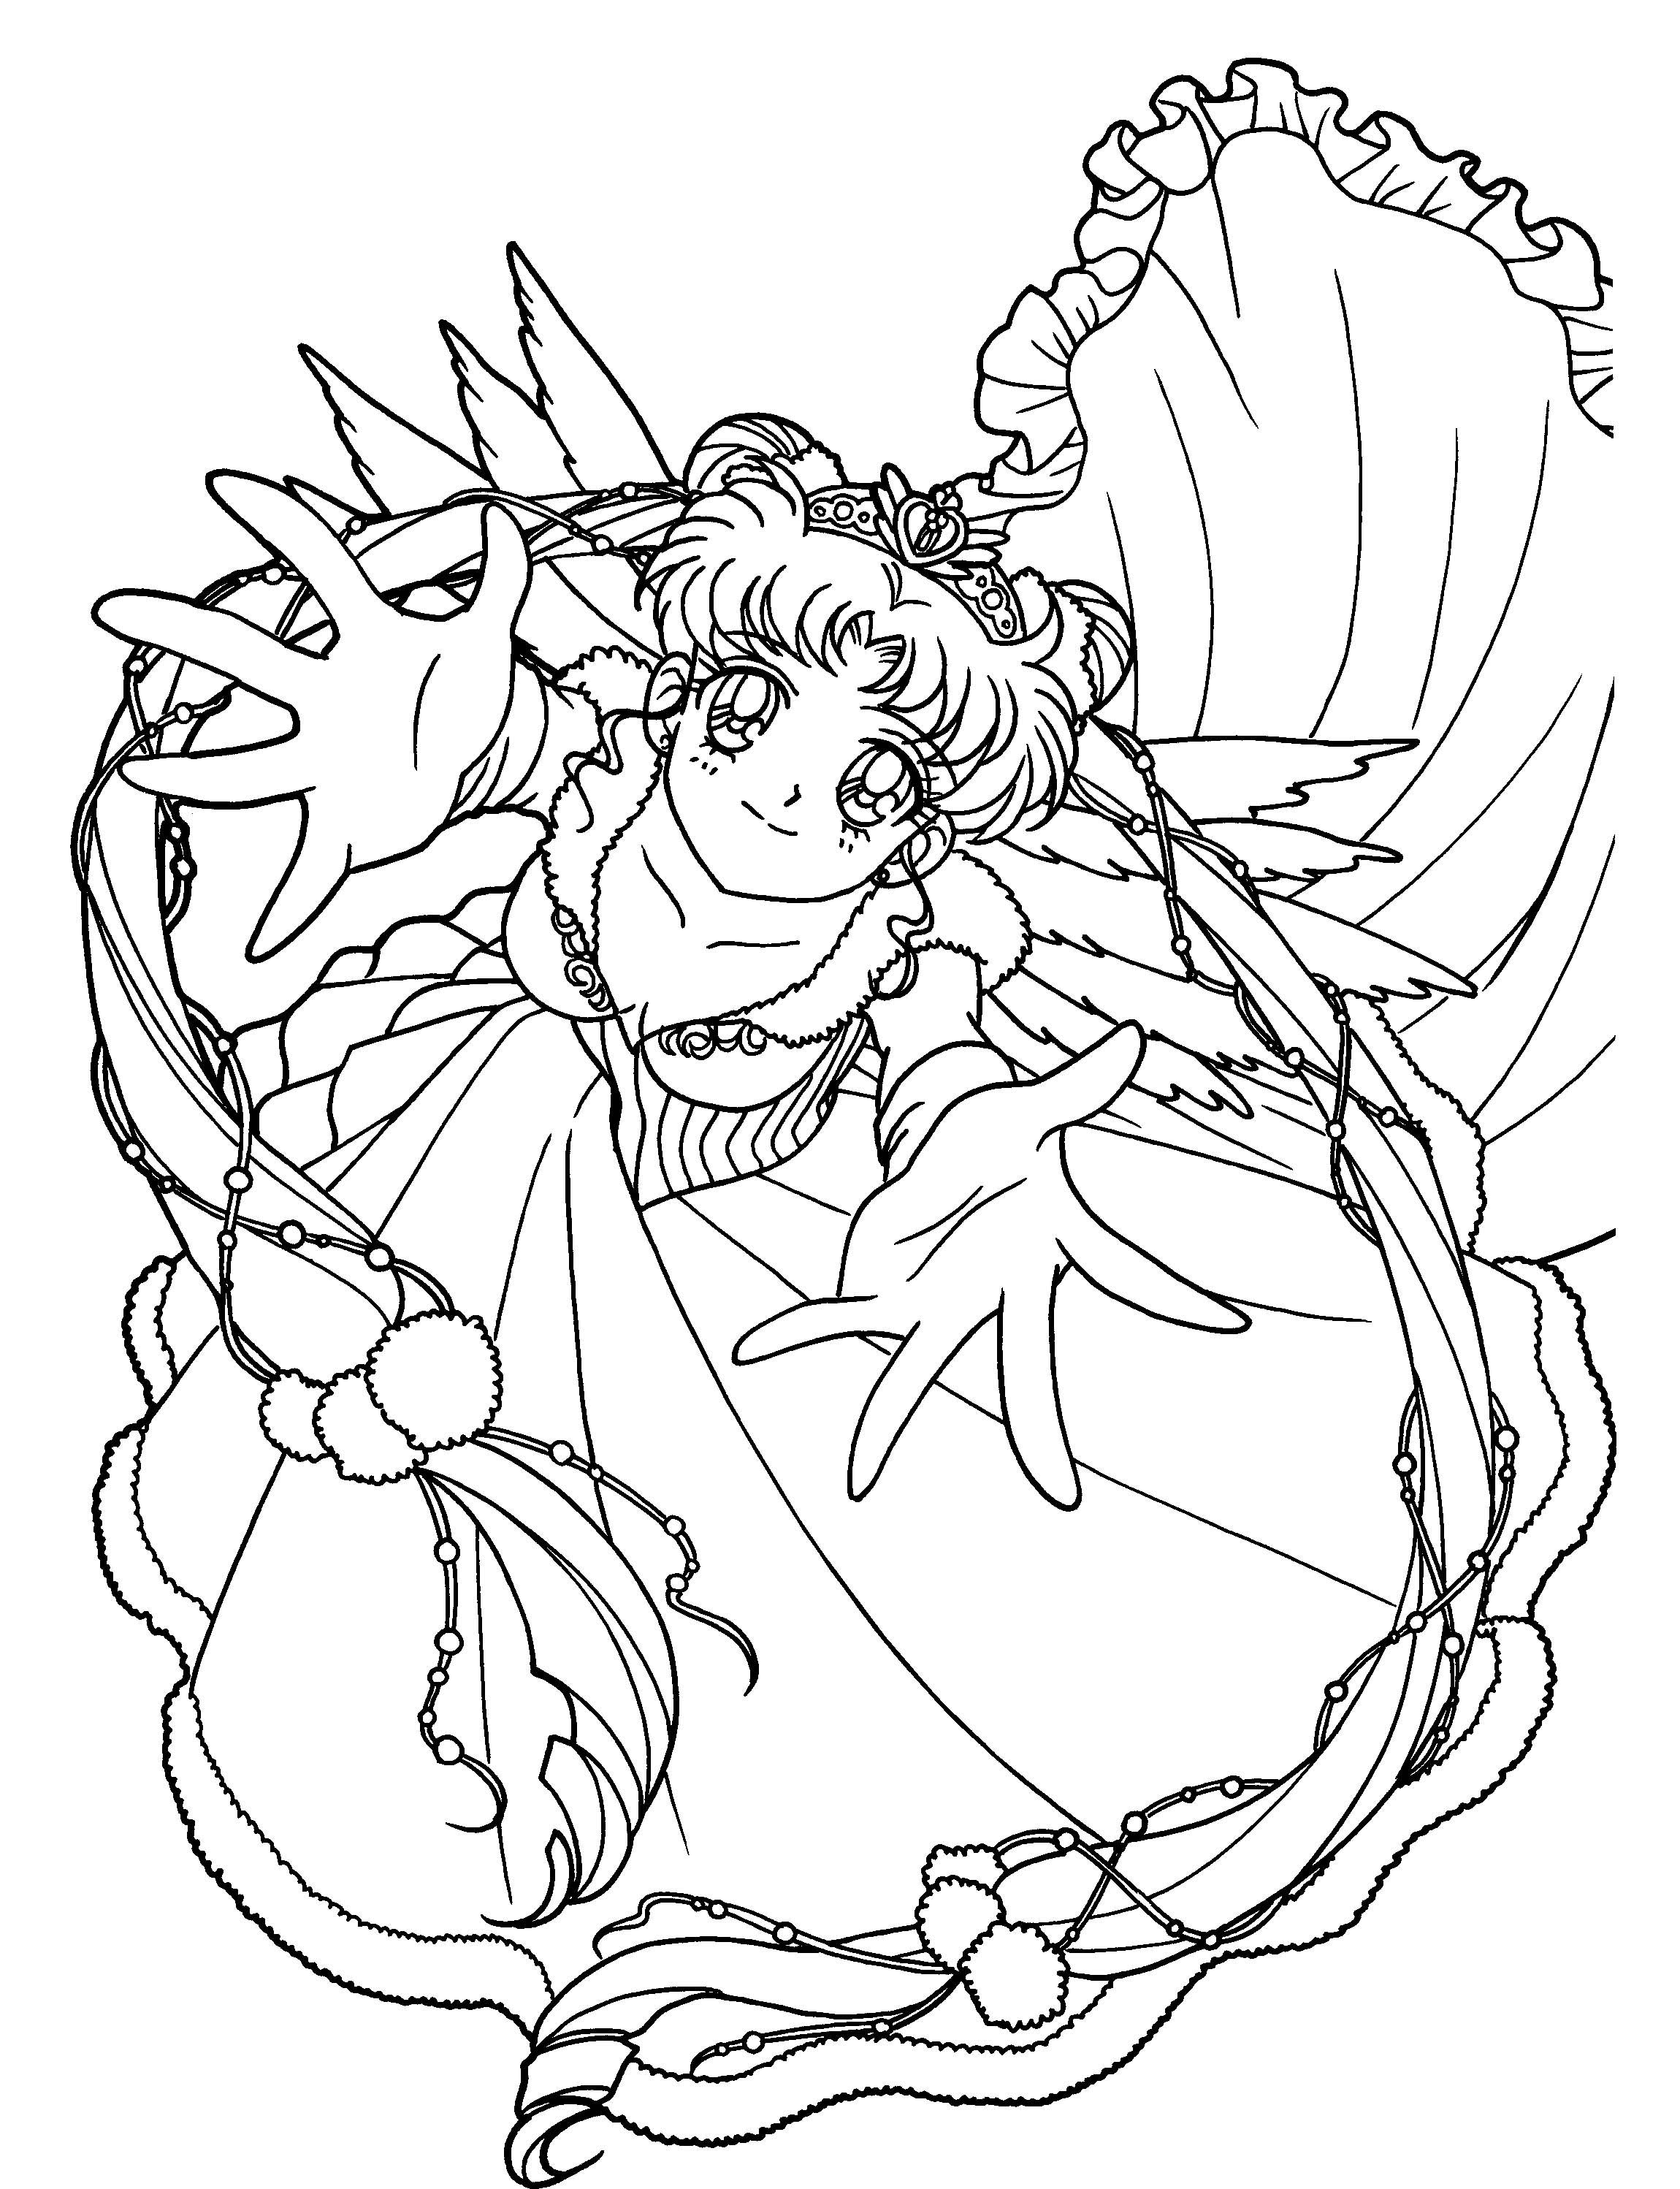 Sailor Moon Coloring Pages Online | coloring pages | Pinterest ...